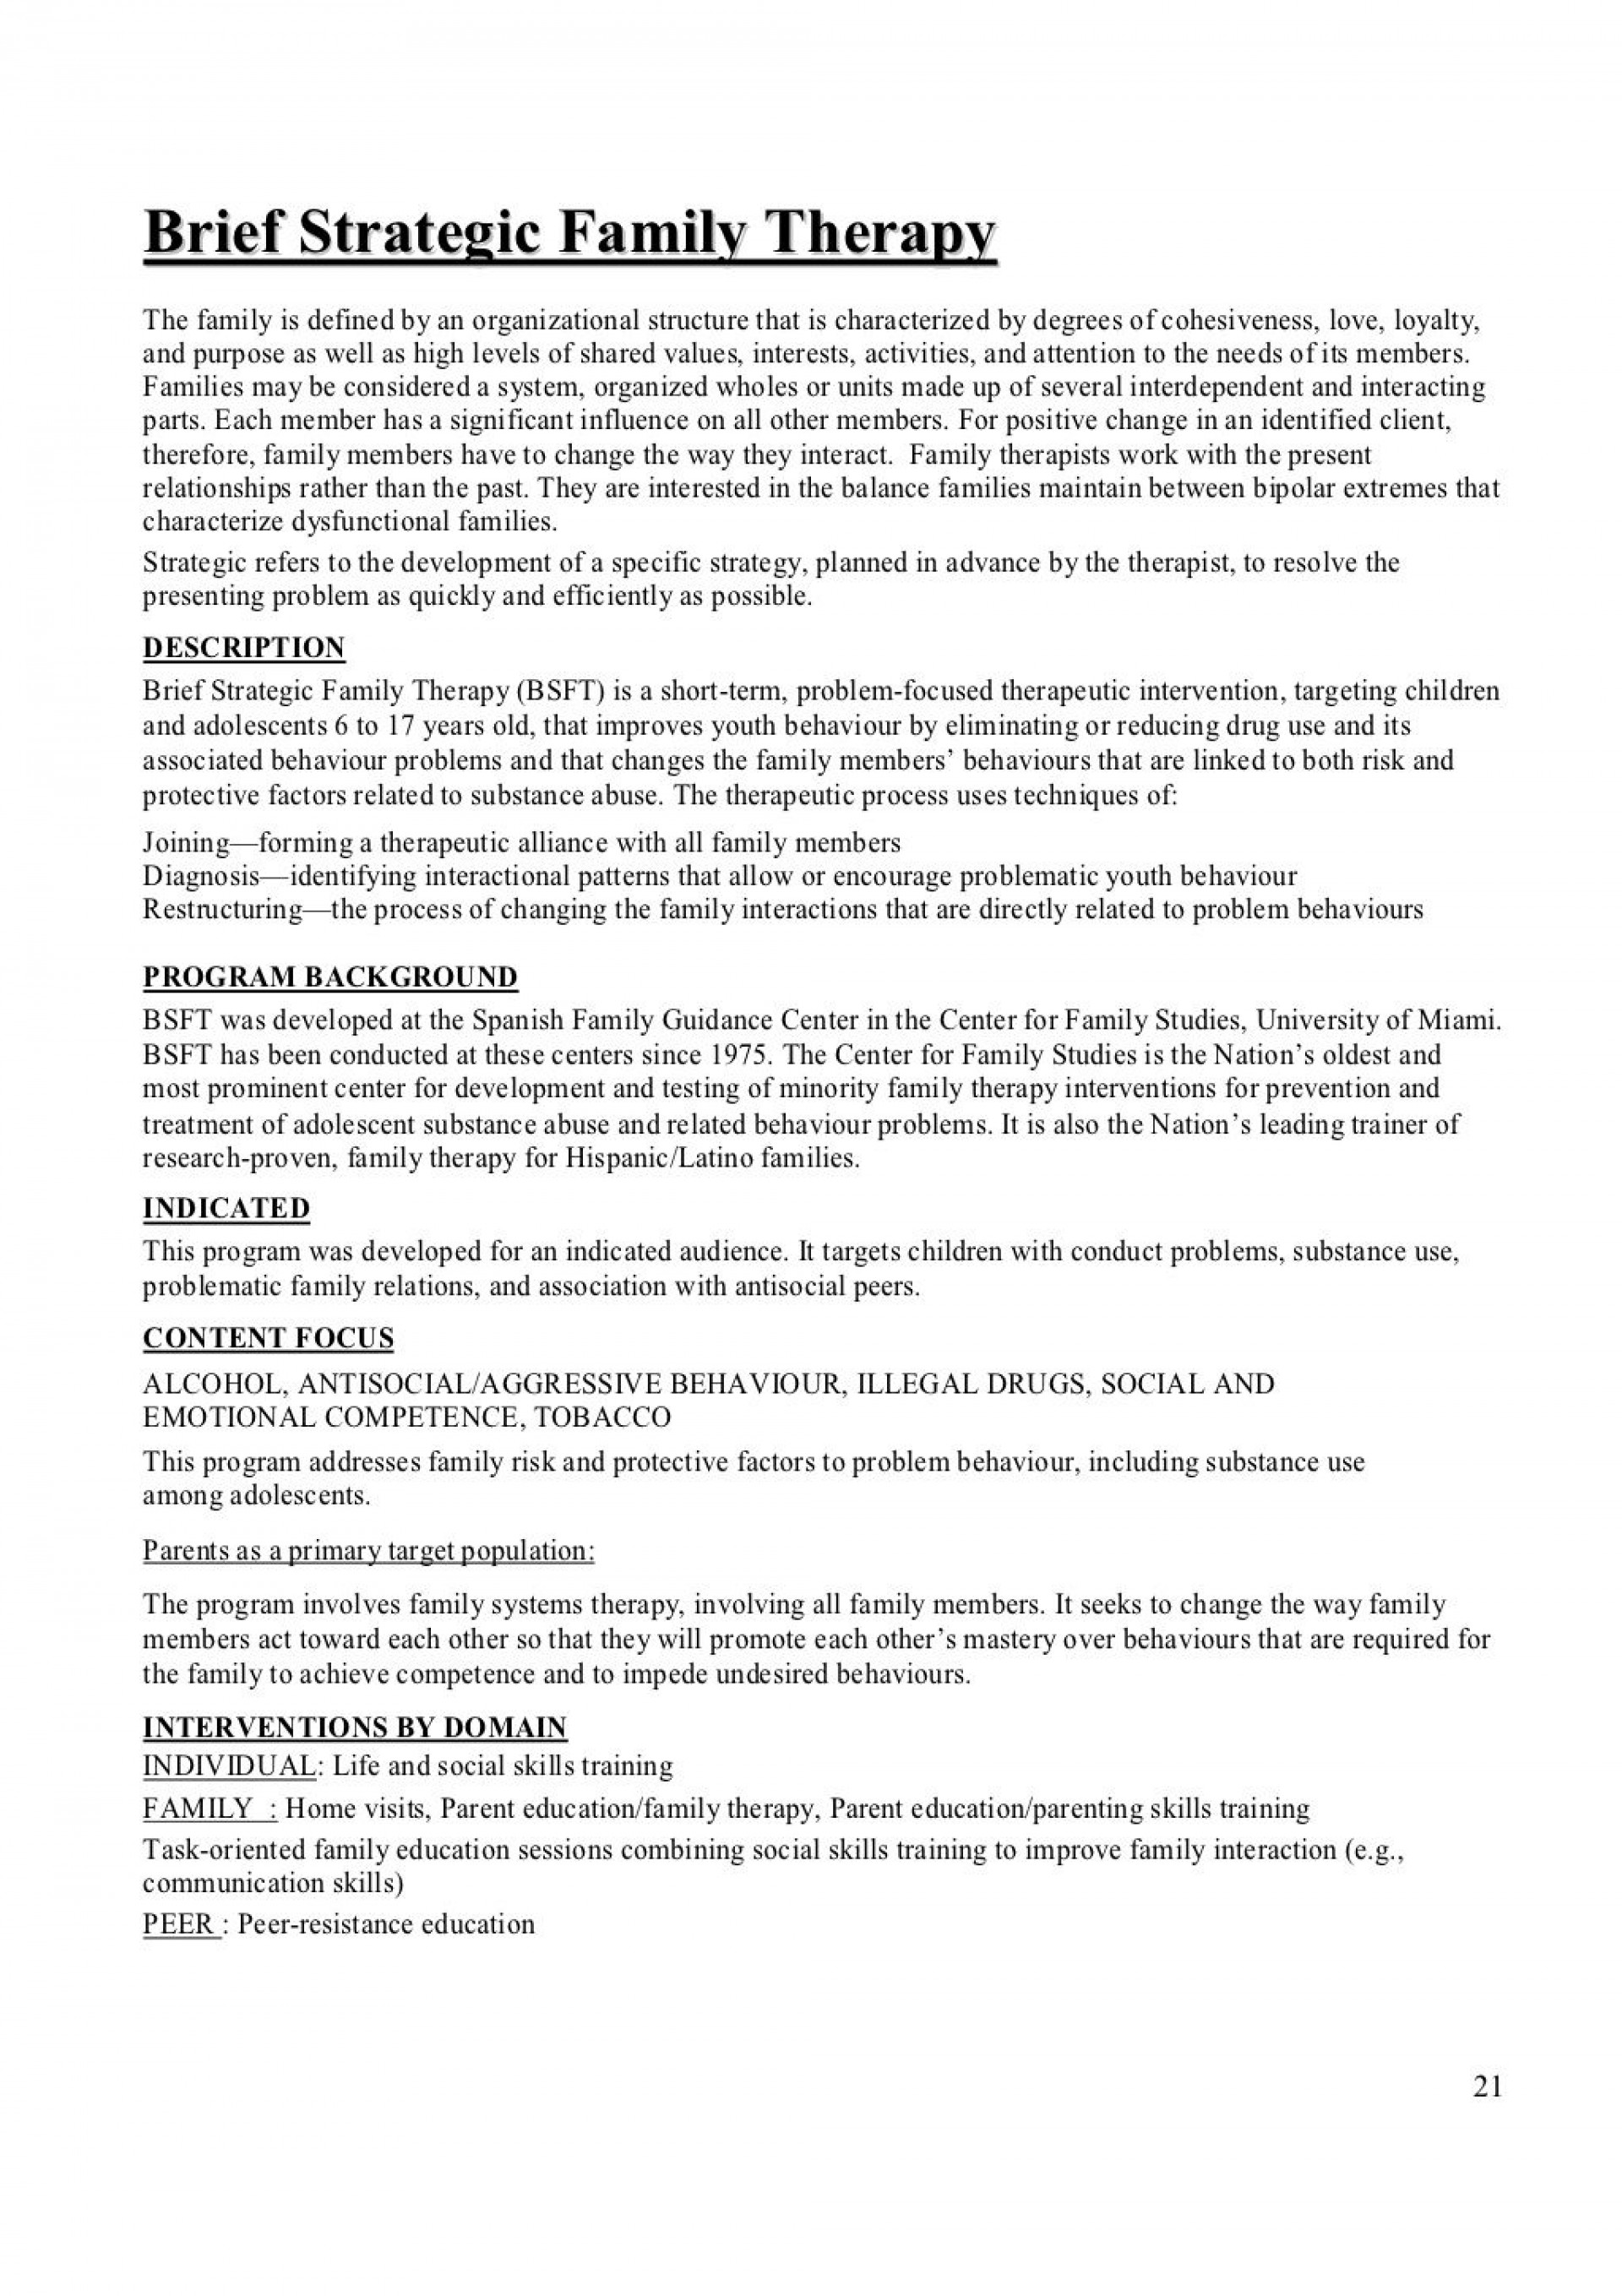 009 Essay Example Counselling Excellent Topics Questions Guidance And 1920